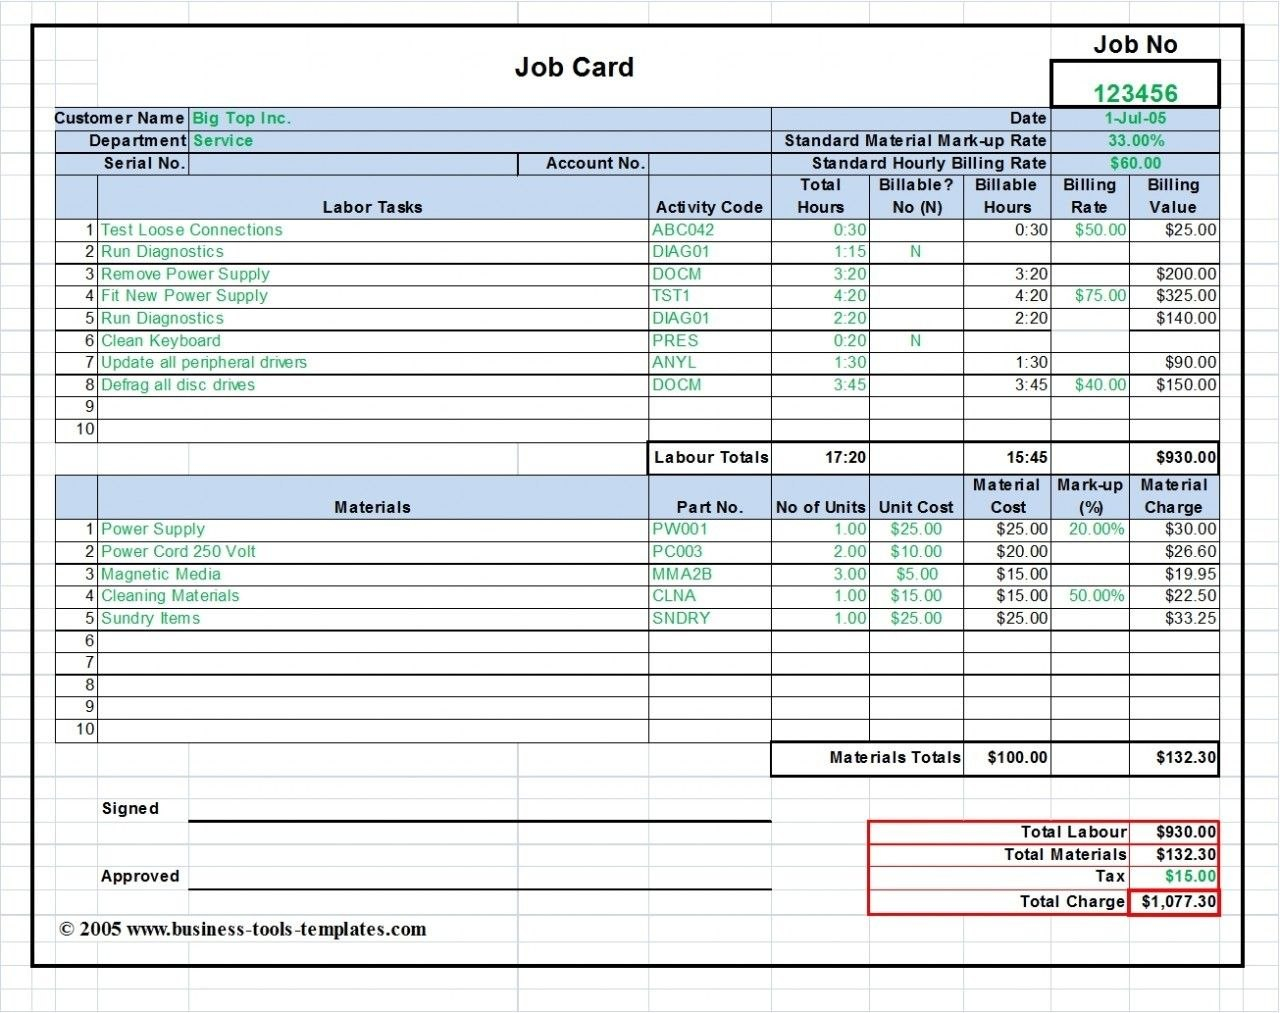 Workshop Job Card Template Excel Labor  Material Cost Estimator Pertaining To Service Job Card Template